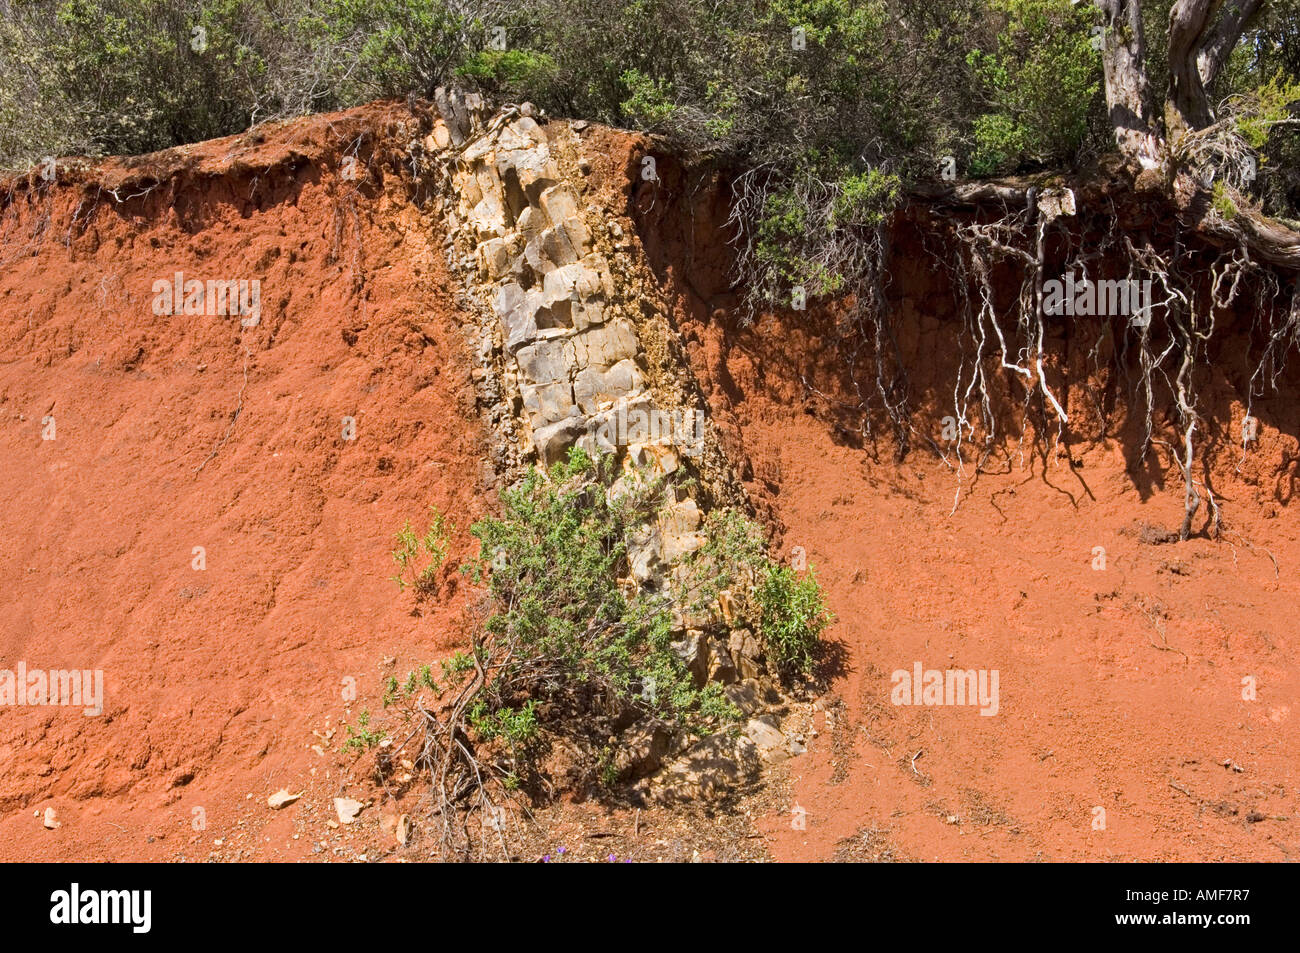 Volcanic dyke. Mass of igneous rock intruded into older red iron rich sedimentary rock. 1km north of Garajonay summit, La Gomera - Stock Image